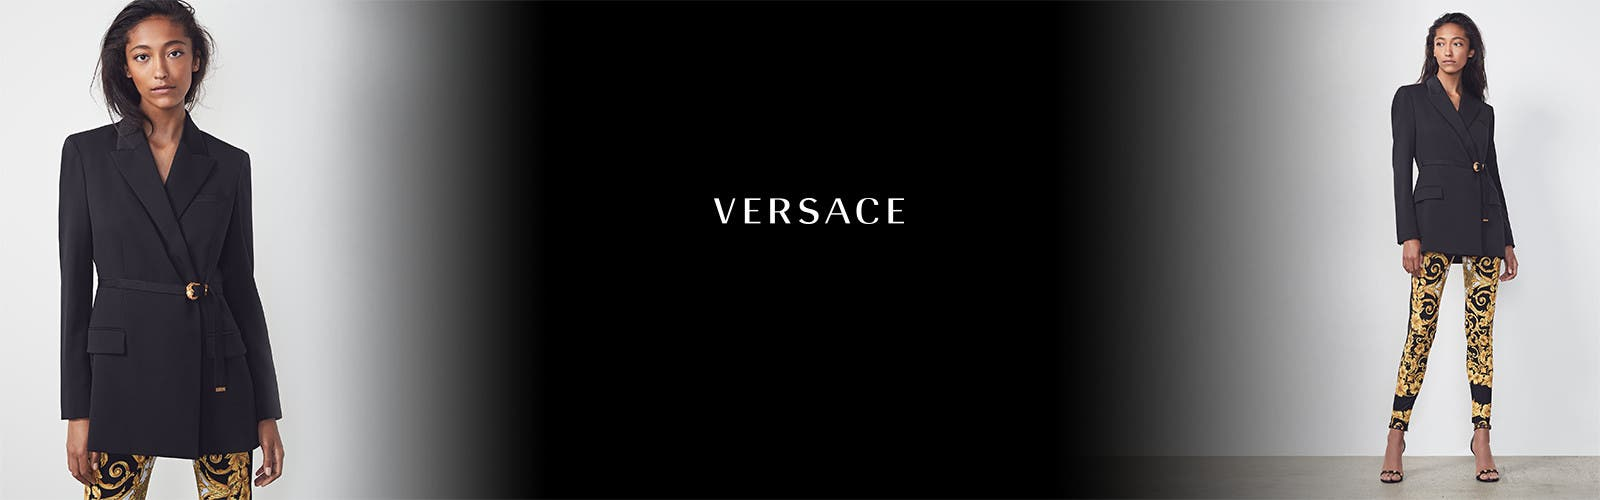 Versace designer clothing, shoes and accessories.